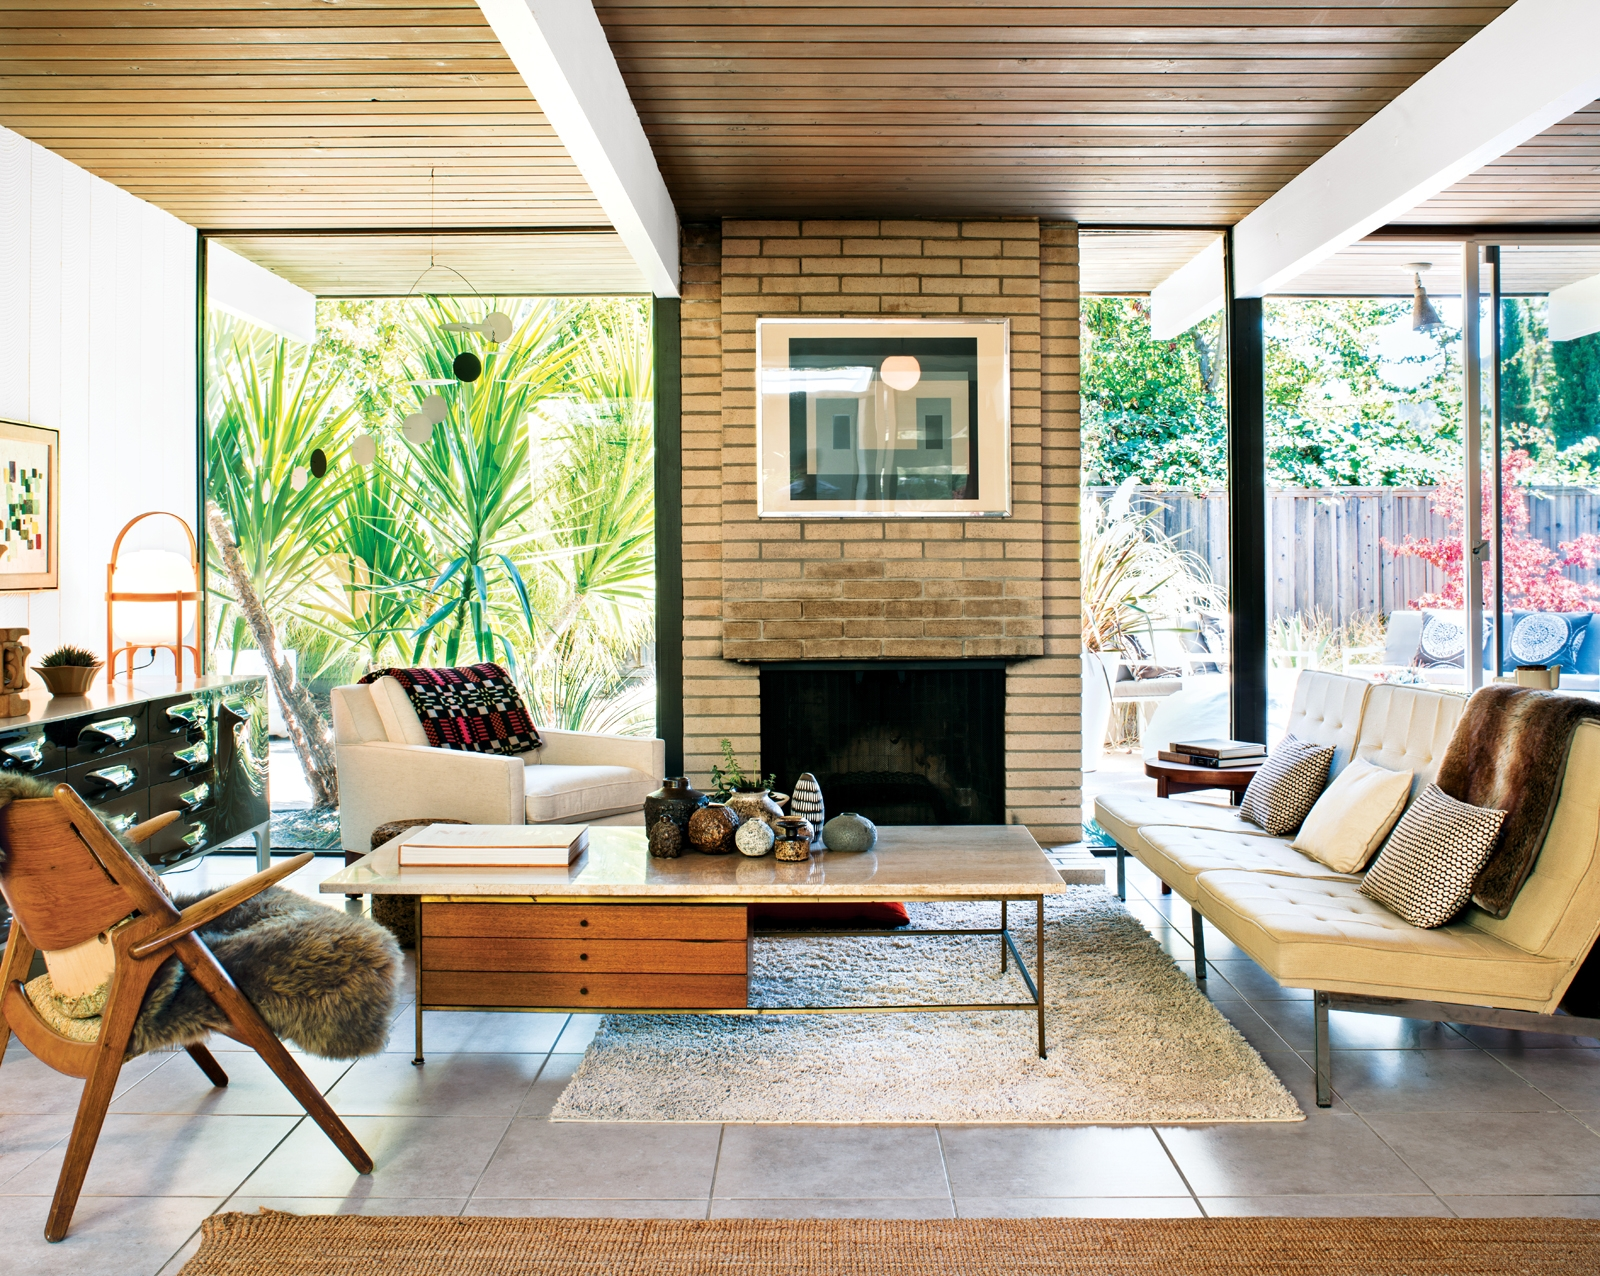 17 Best Images About Modern Home On Pinterest Pertaining To Florence Knoll Living Room Sofas (View 15 of 15)